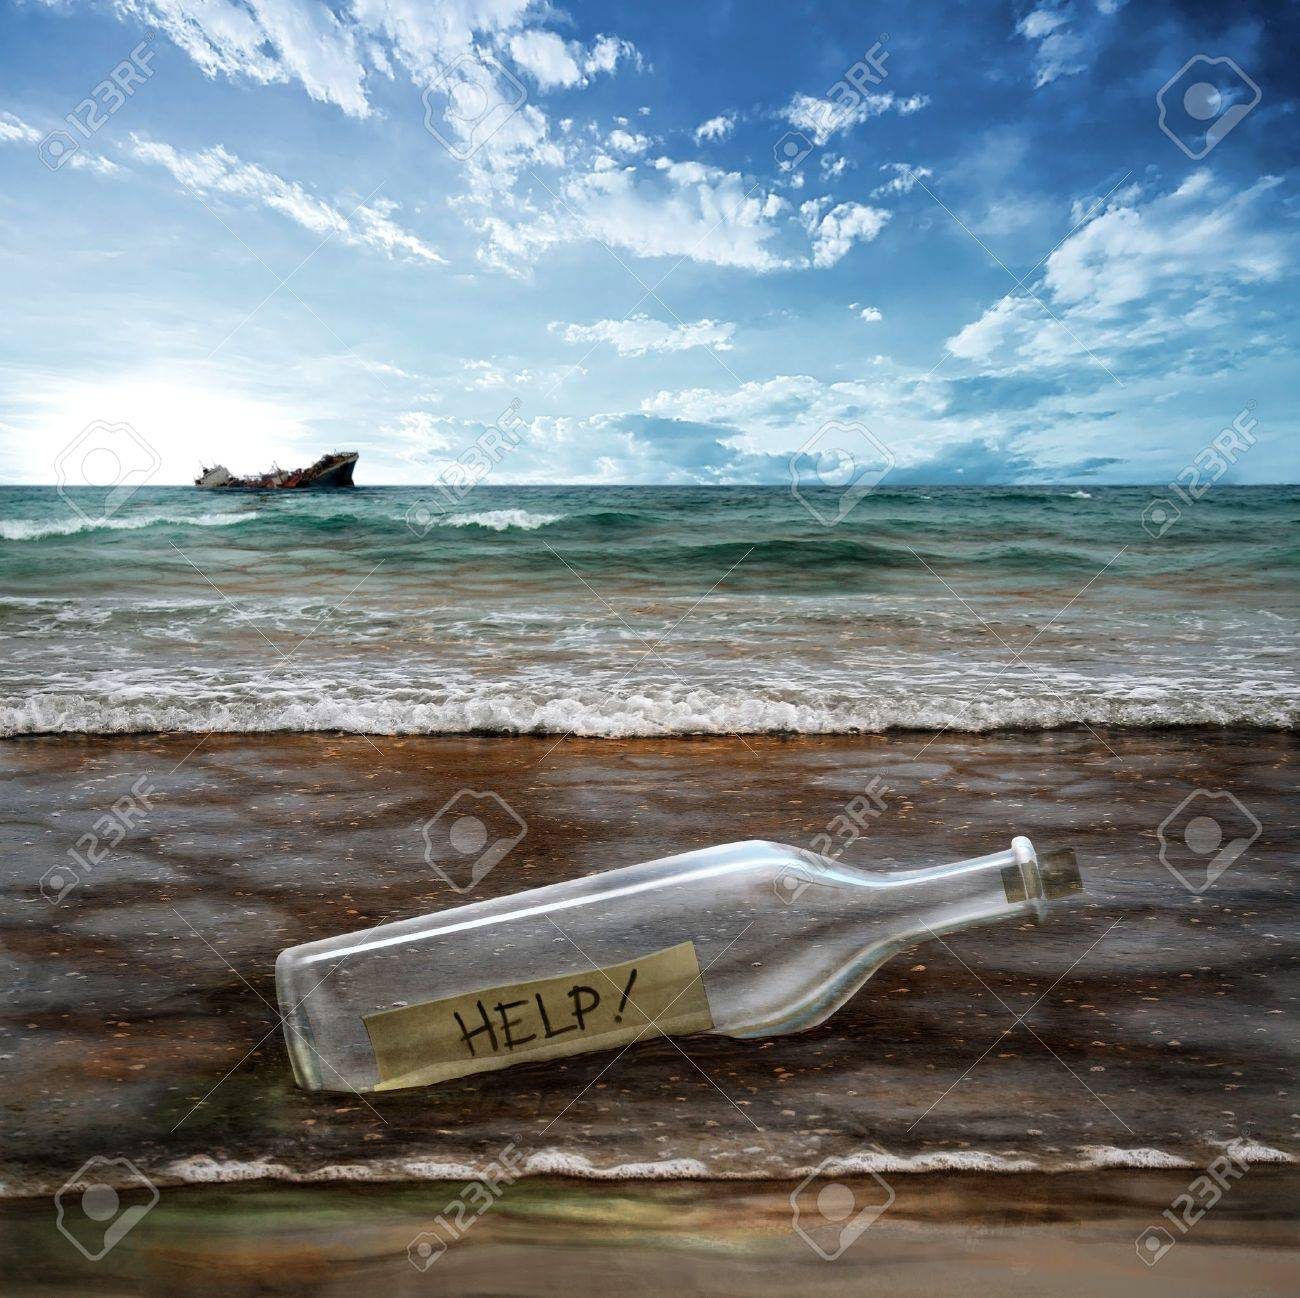 Help message in a bottle with background contaminated sea Stock Photo - 7326601